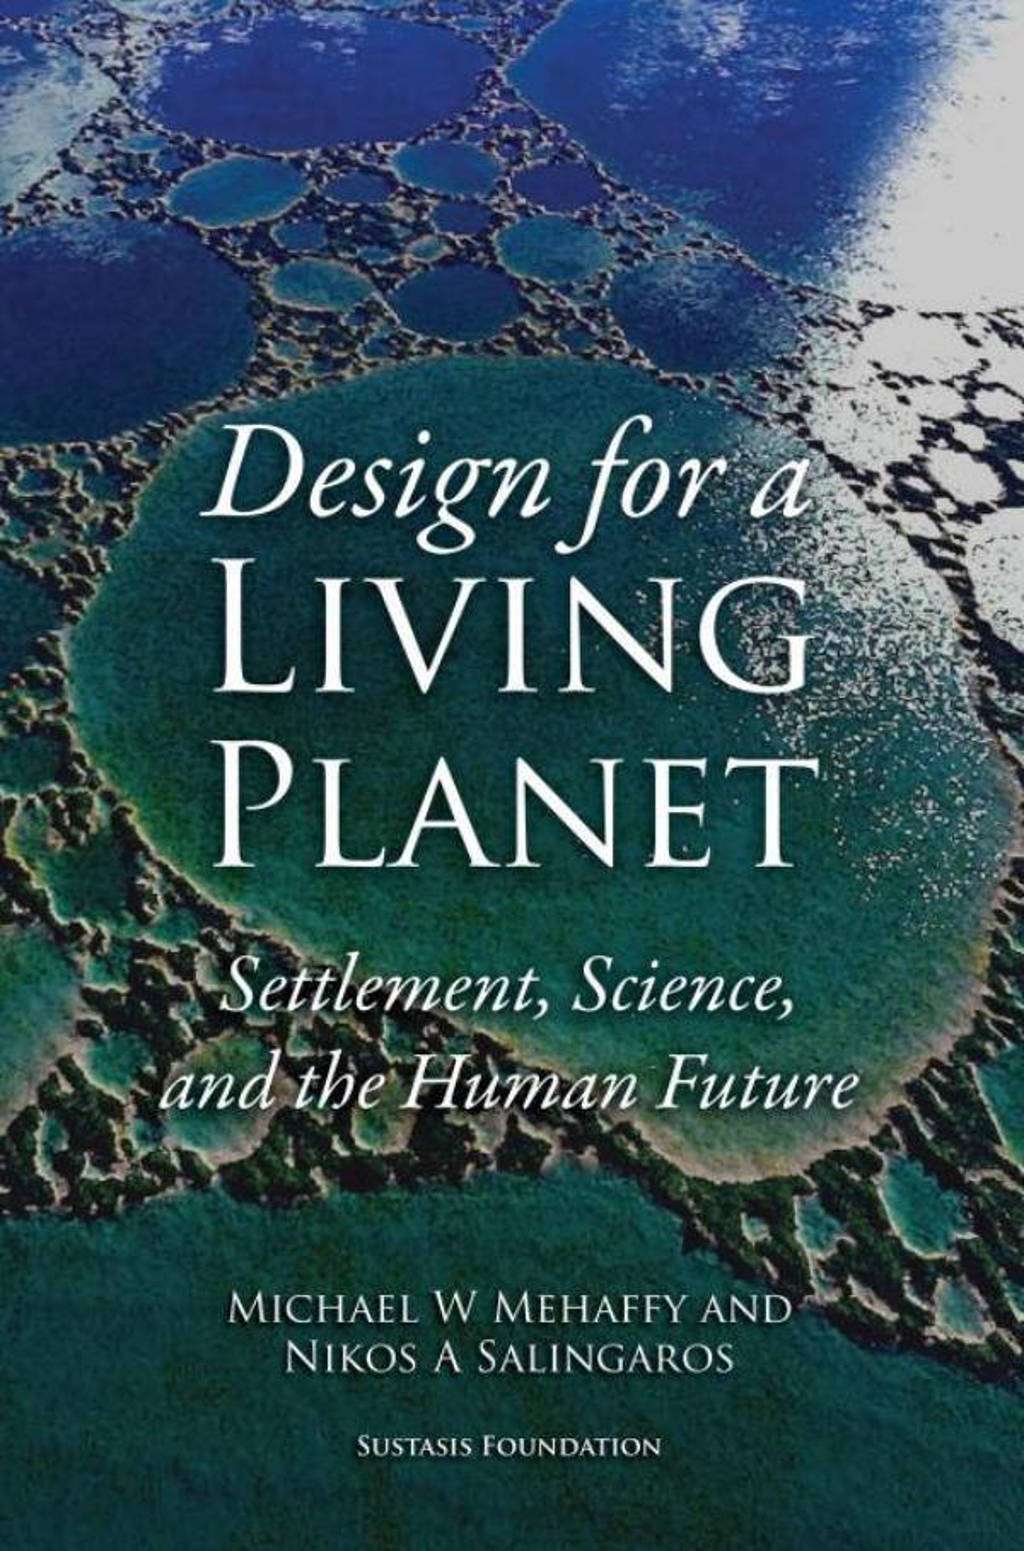 Design for a Living Planet: Settlement, Science, and the Human Future - Michael W. Mehaffy